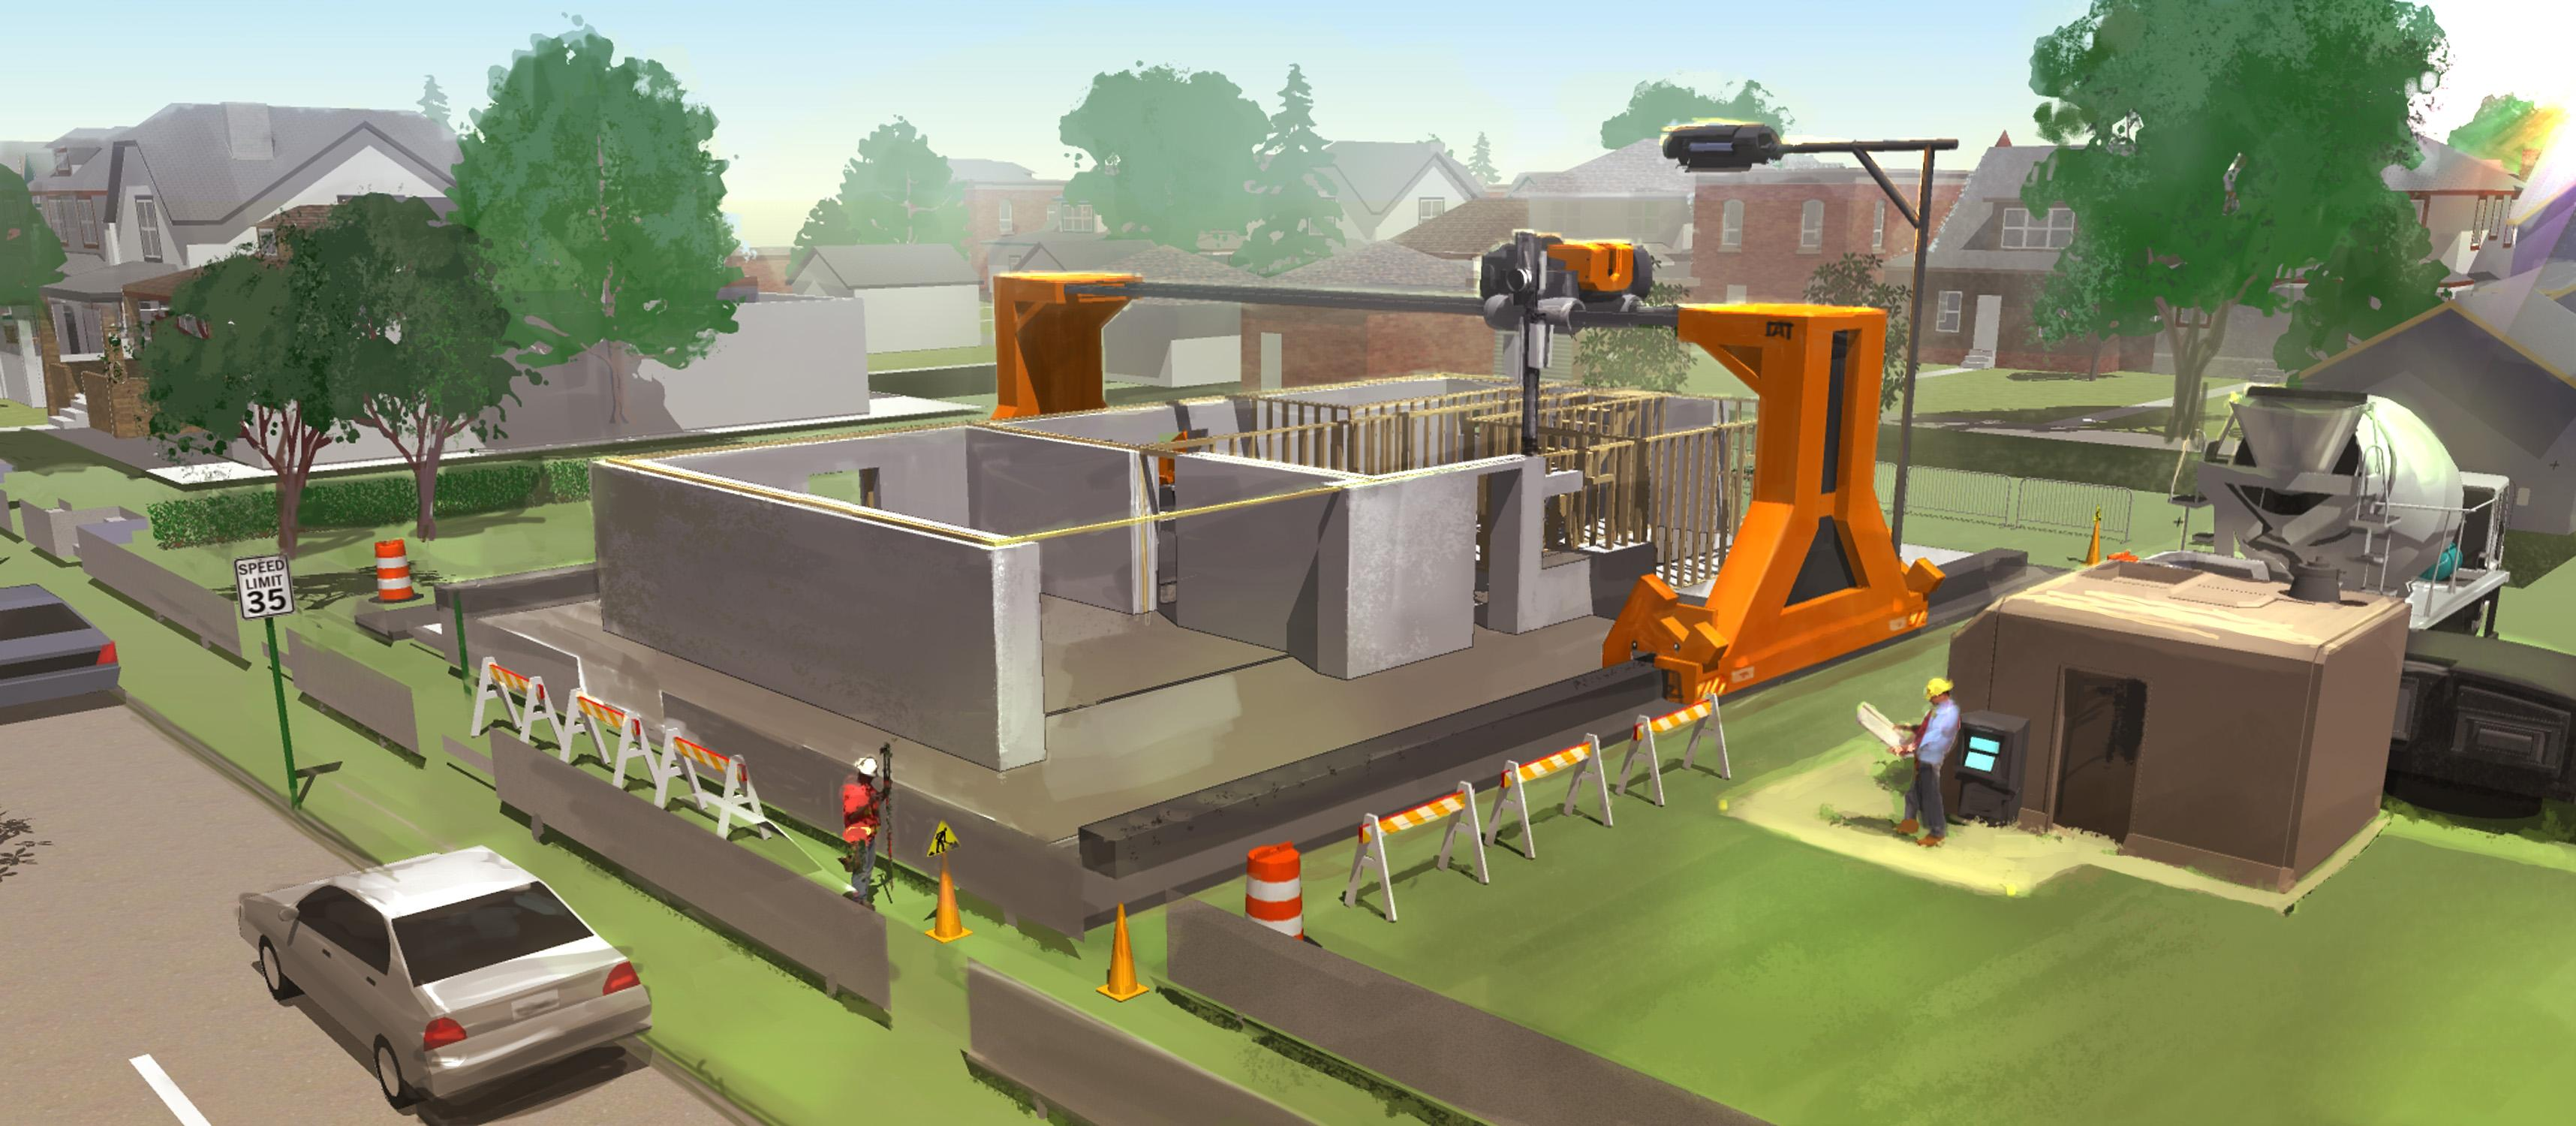 3d printing will revolutionize your construction company for Construction maison 3d nantes